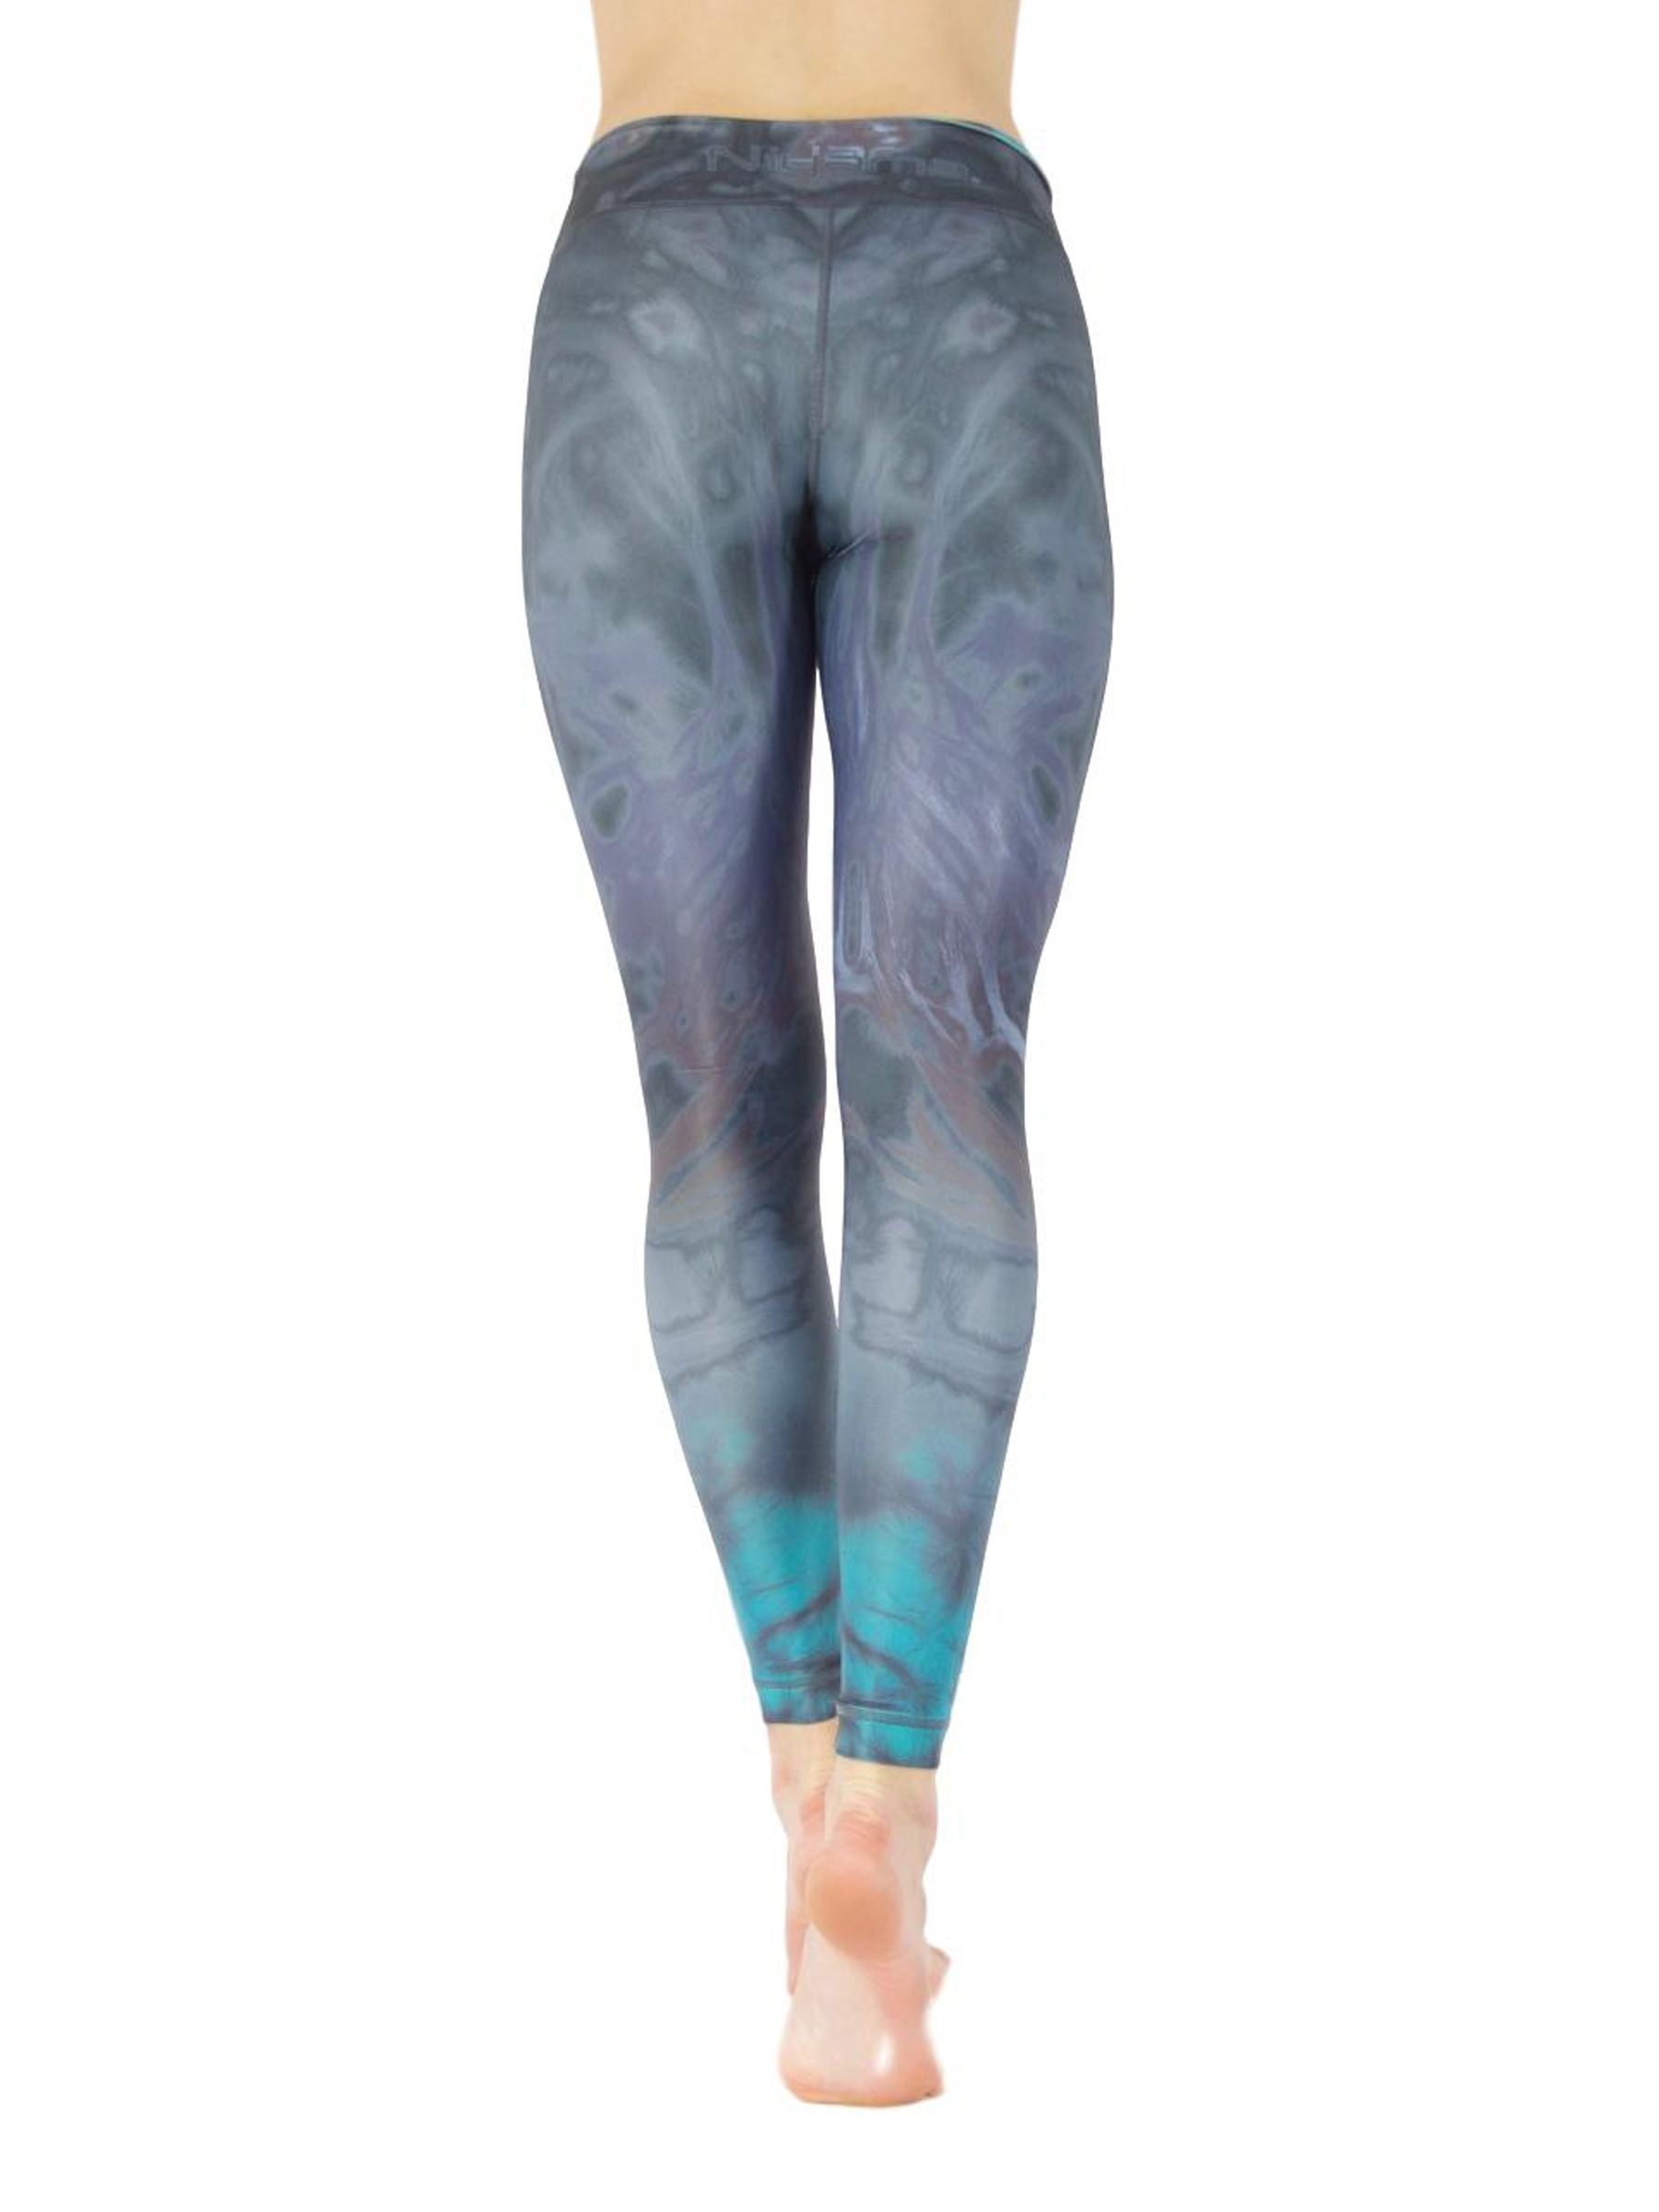 Breathe All Out by Niyama - High Quality, Yoga Legging for Movement Artists.